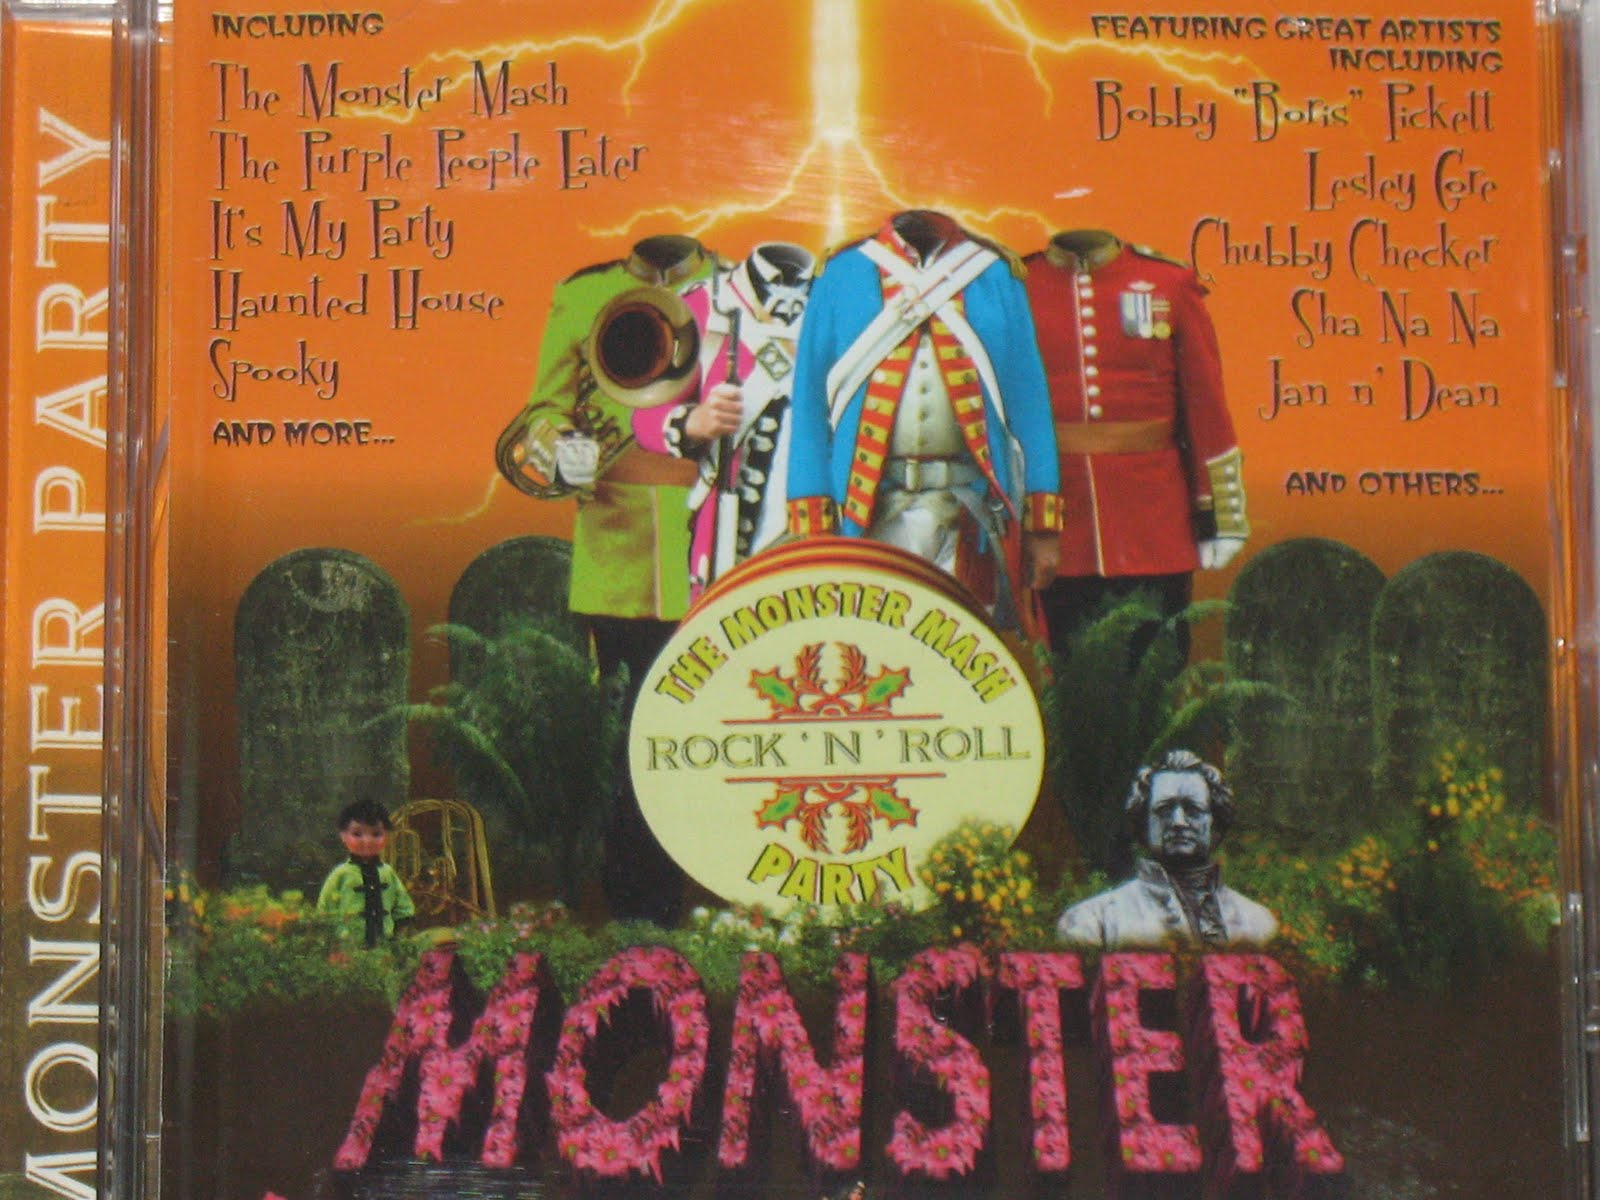 Sha Na Na - Monster Mash Rock 'n' Roll Party